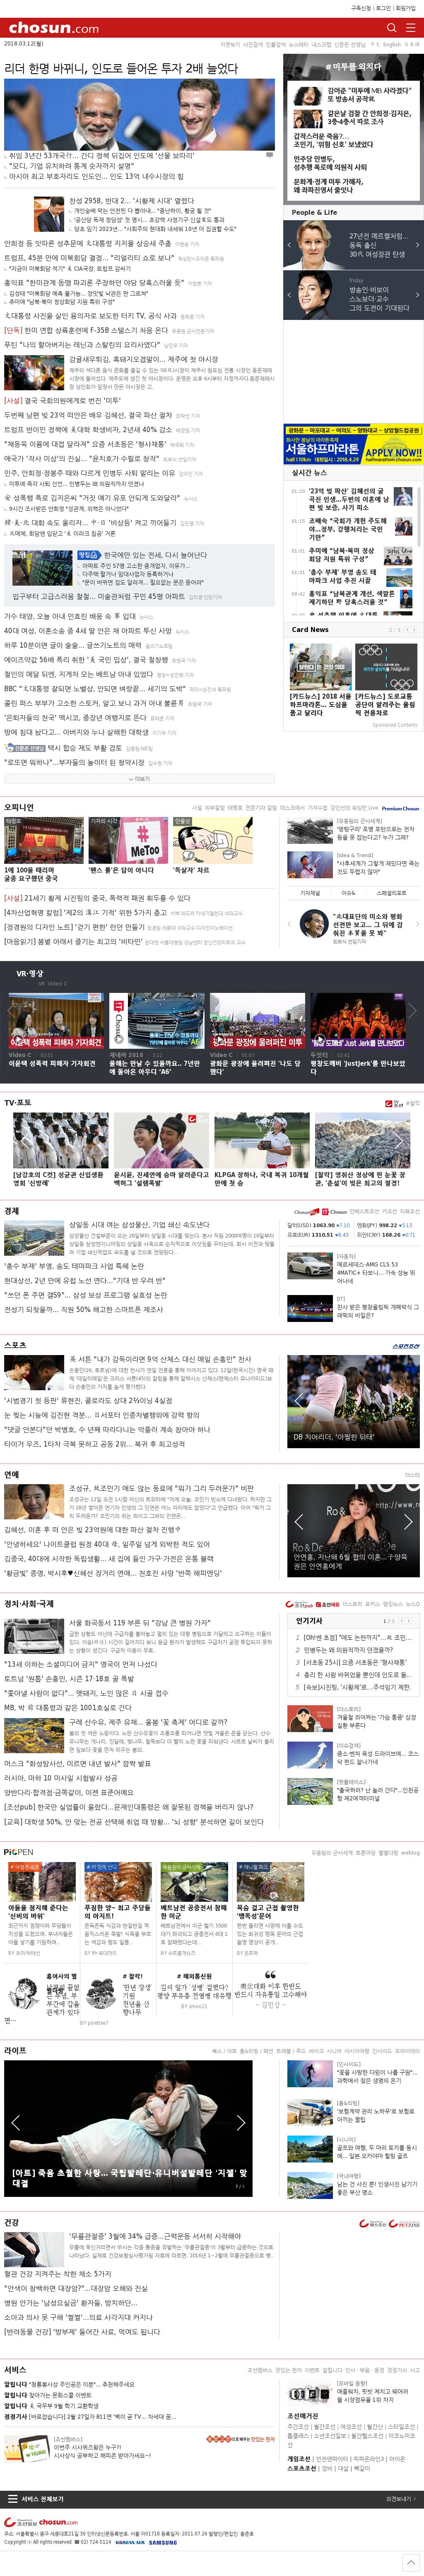 chosun.com at Monday March 12, 2018, 2:03 a.m. UTC